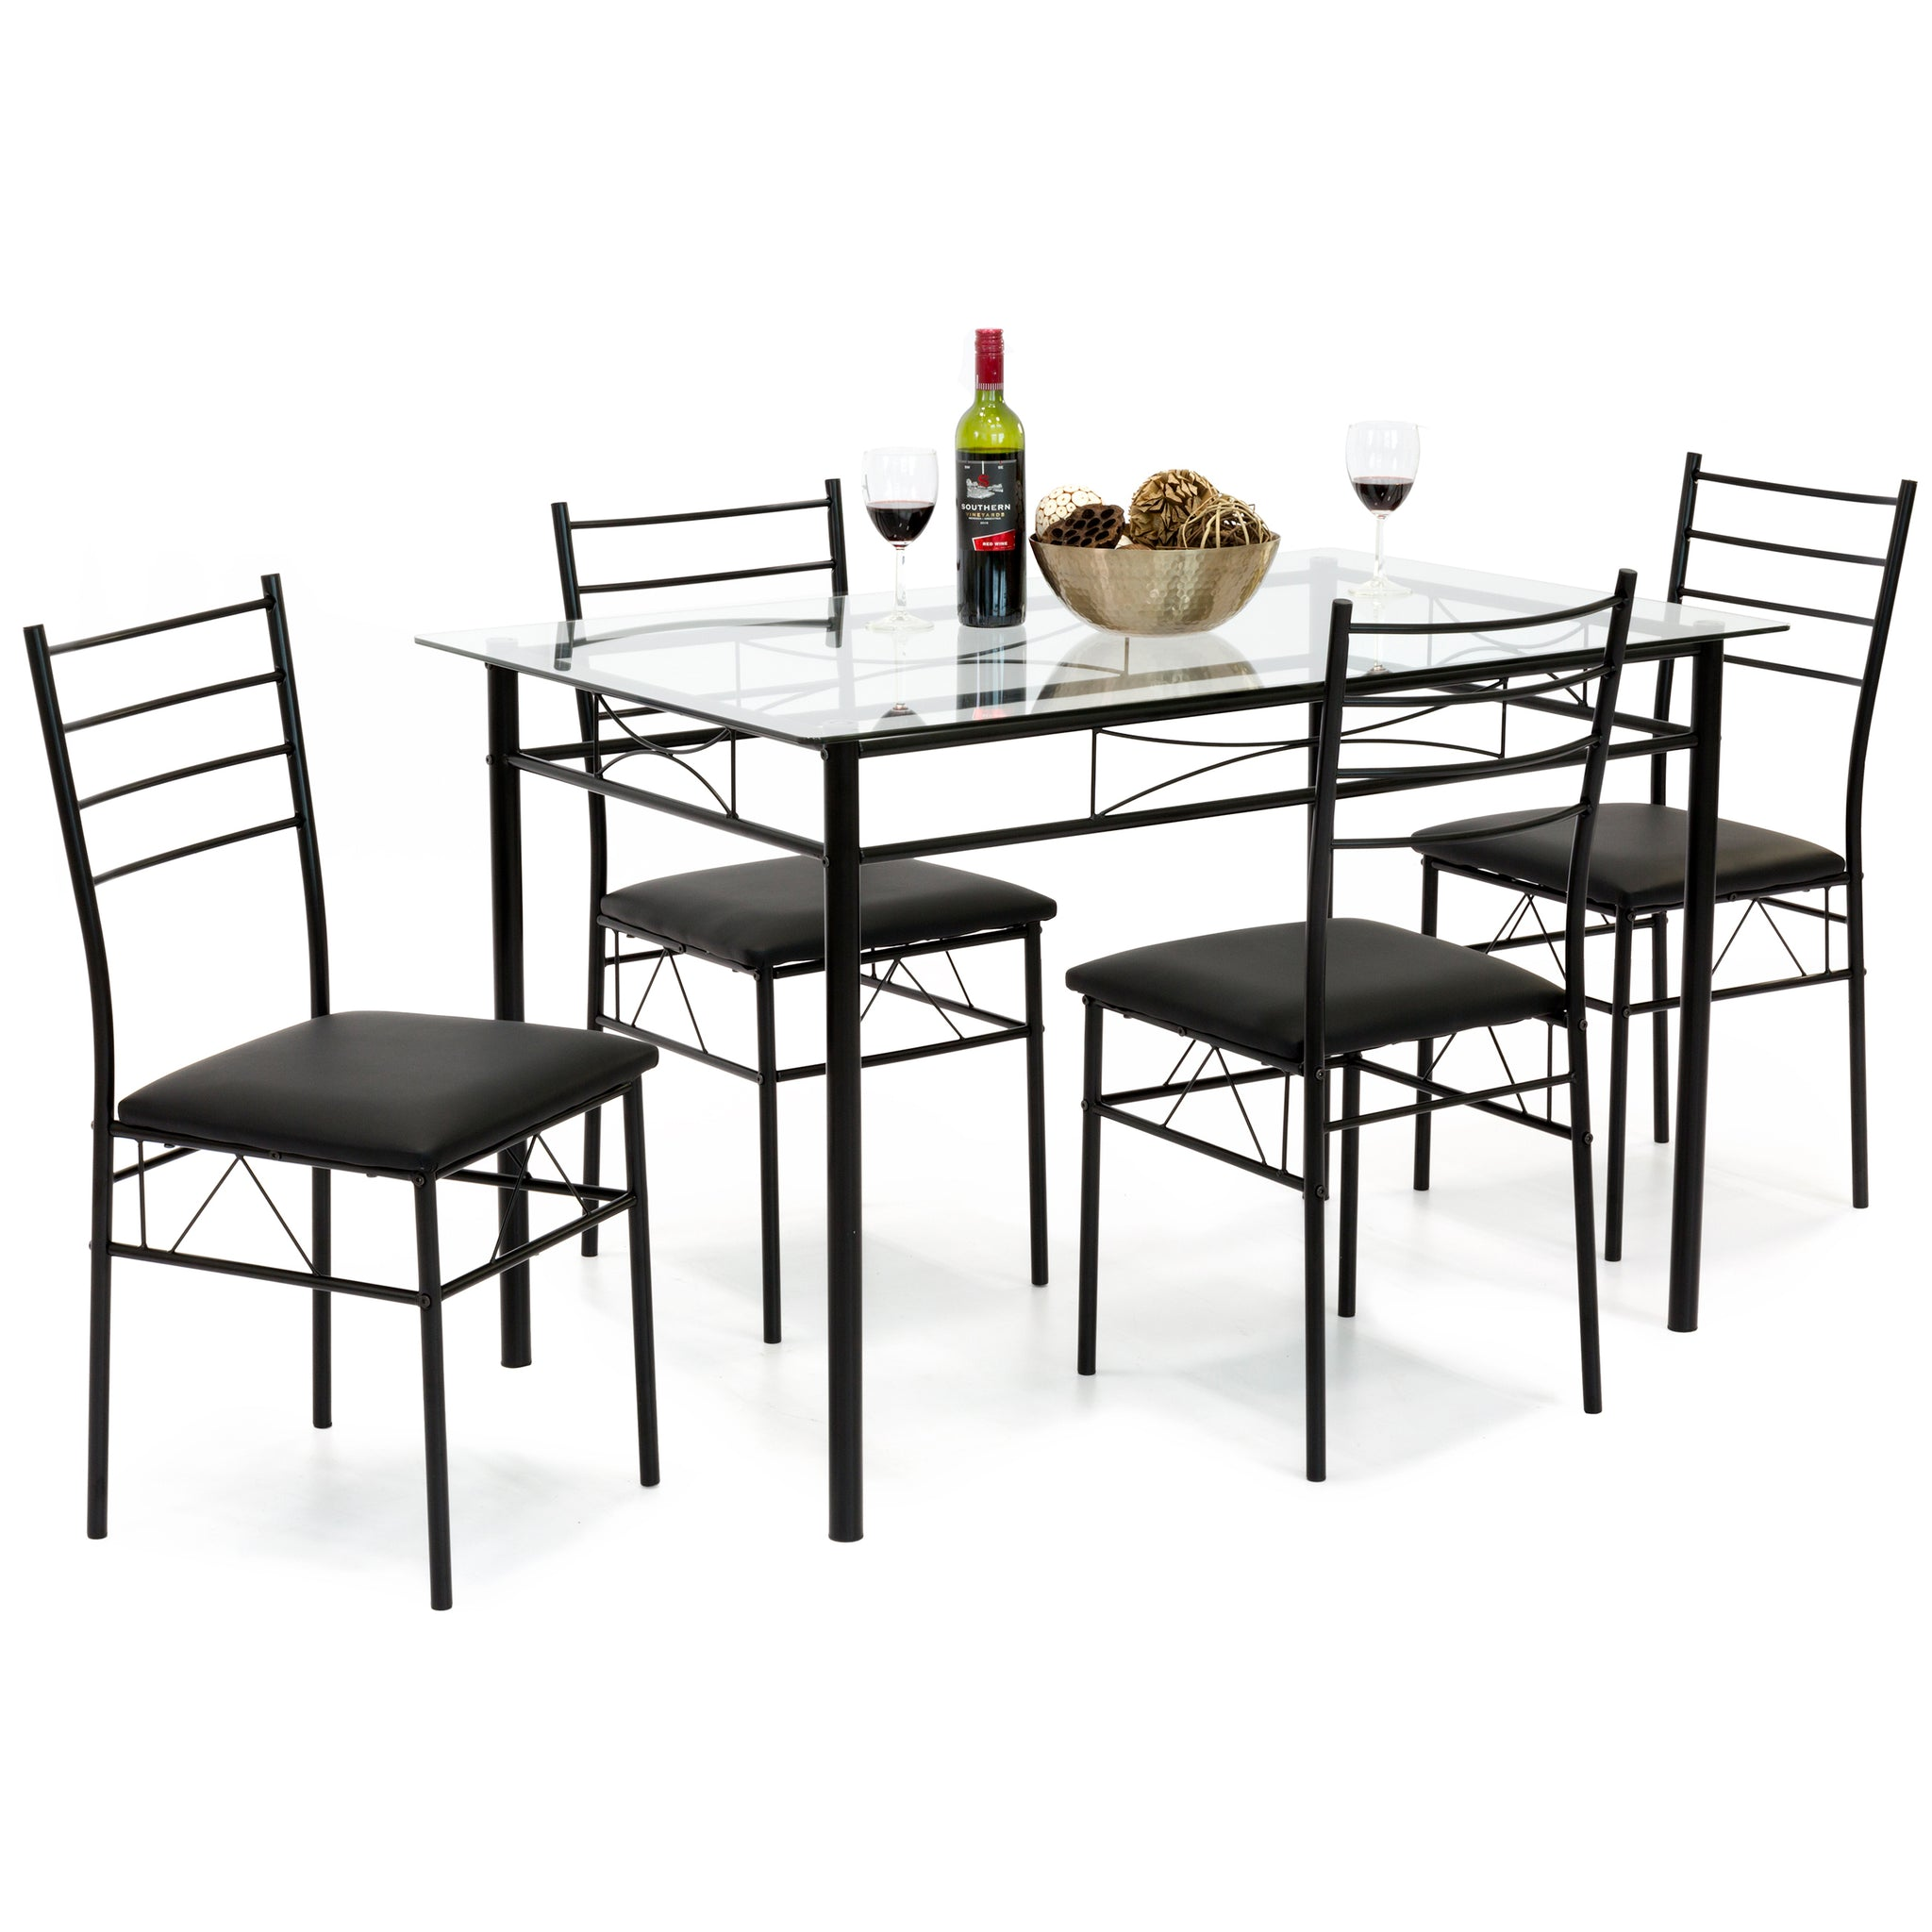 5 Piece Glass Dining Table Set